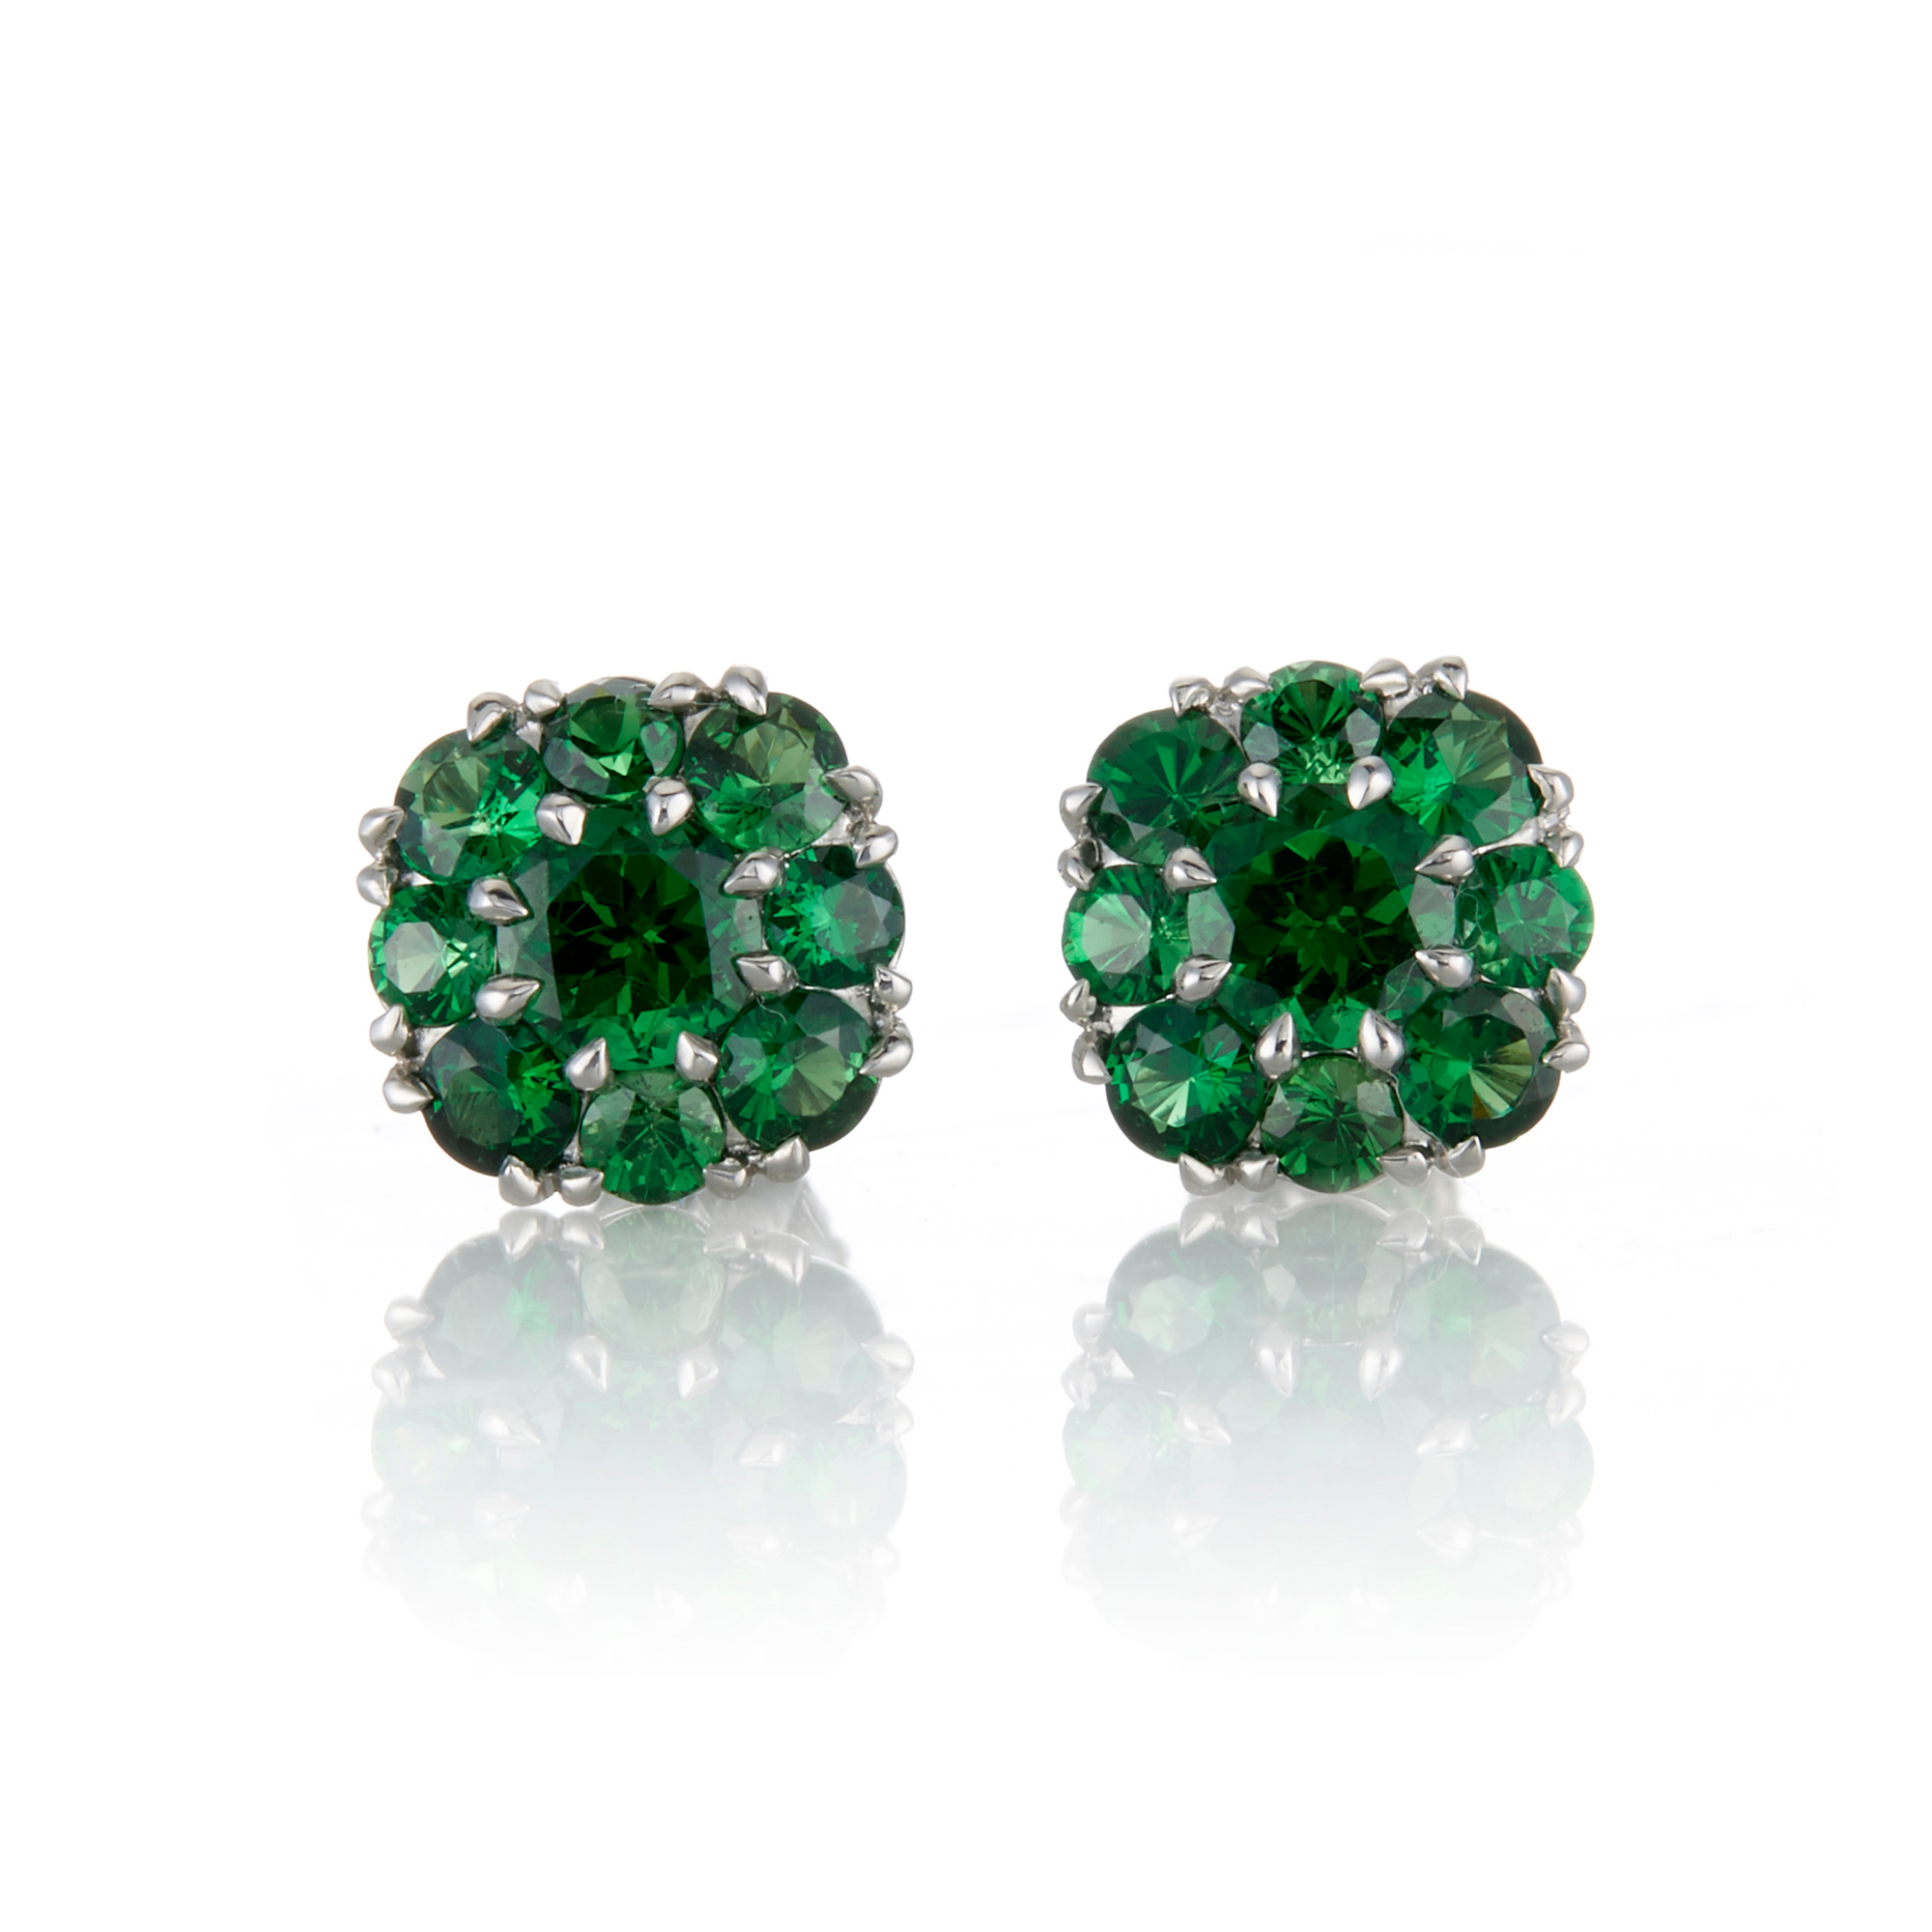 McTeigue & McClelland Tsavorite Berry Cluster Platinum Earrings